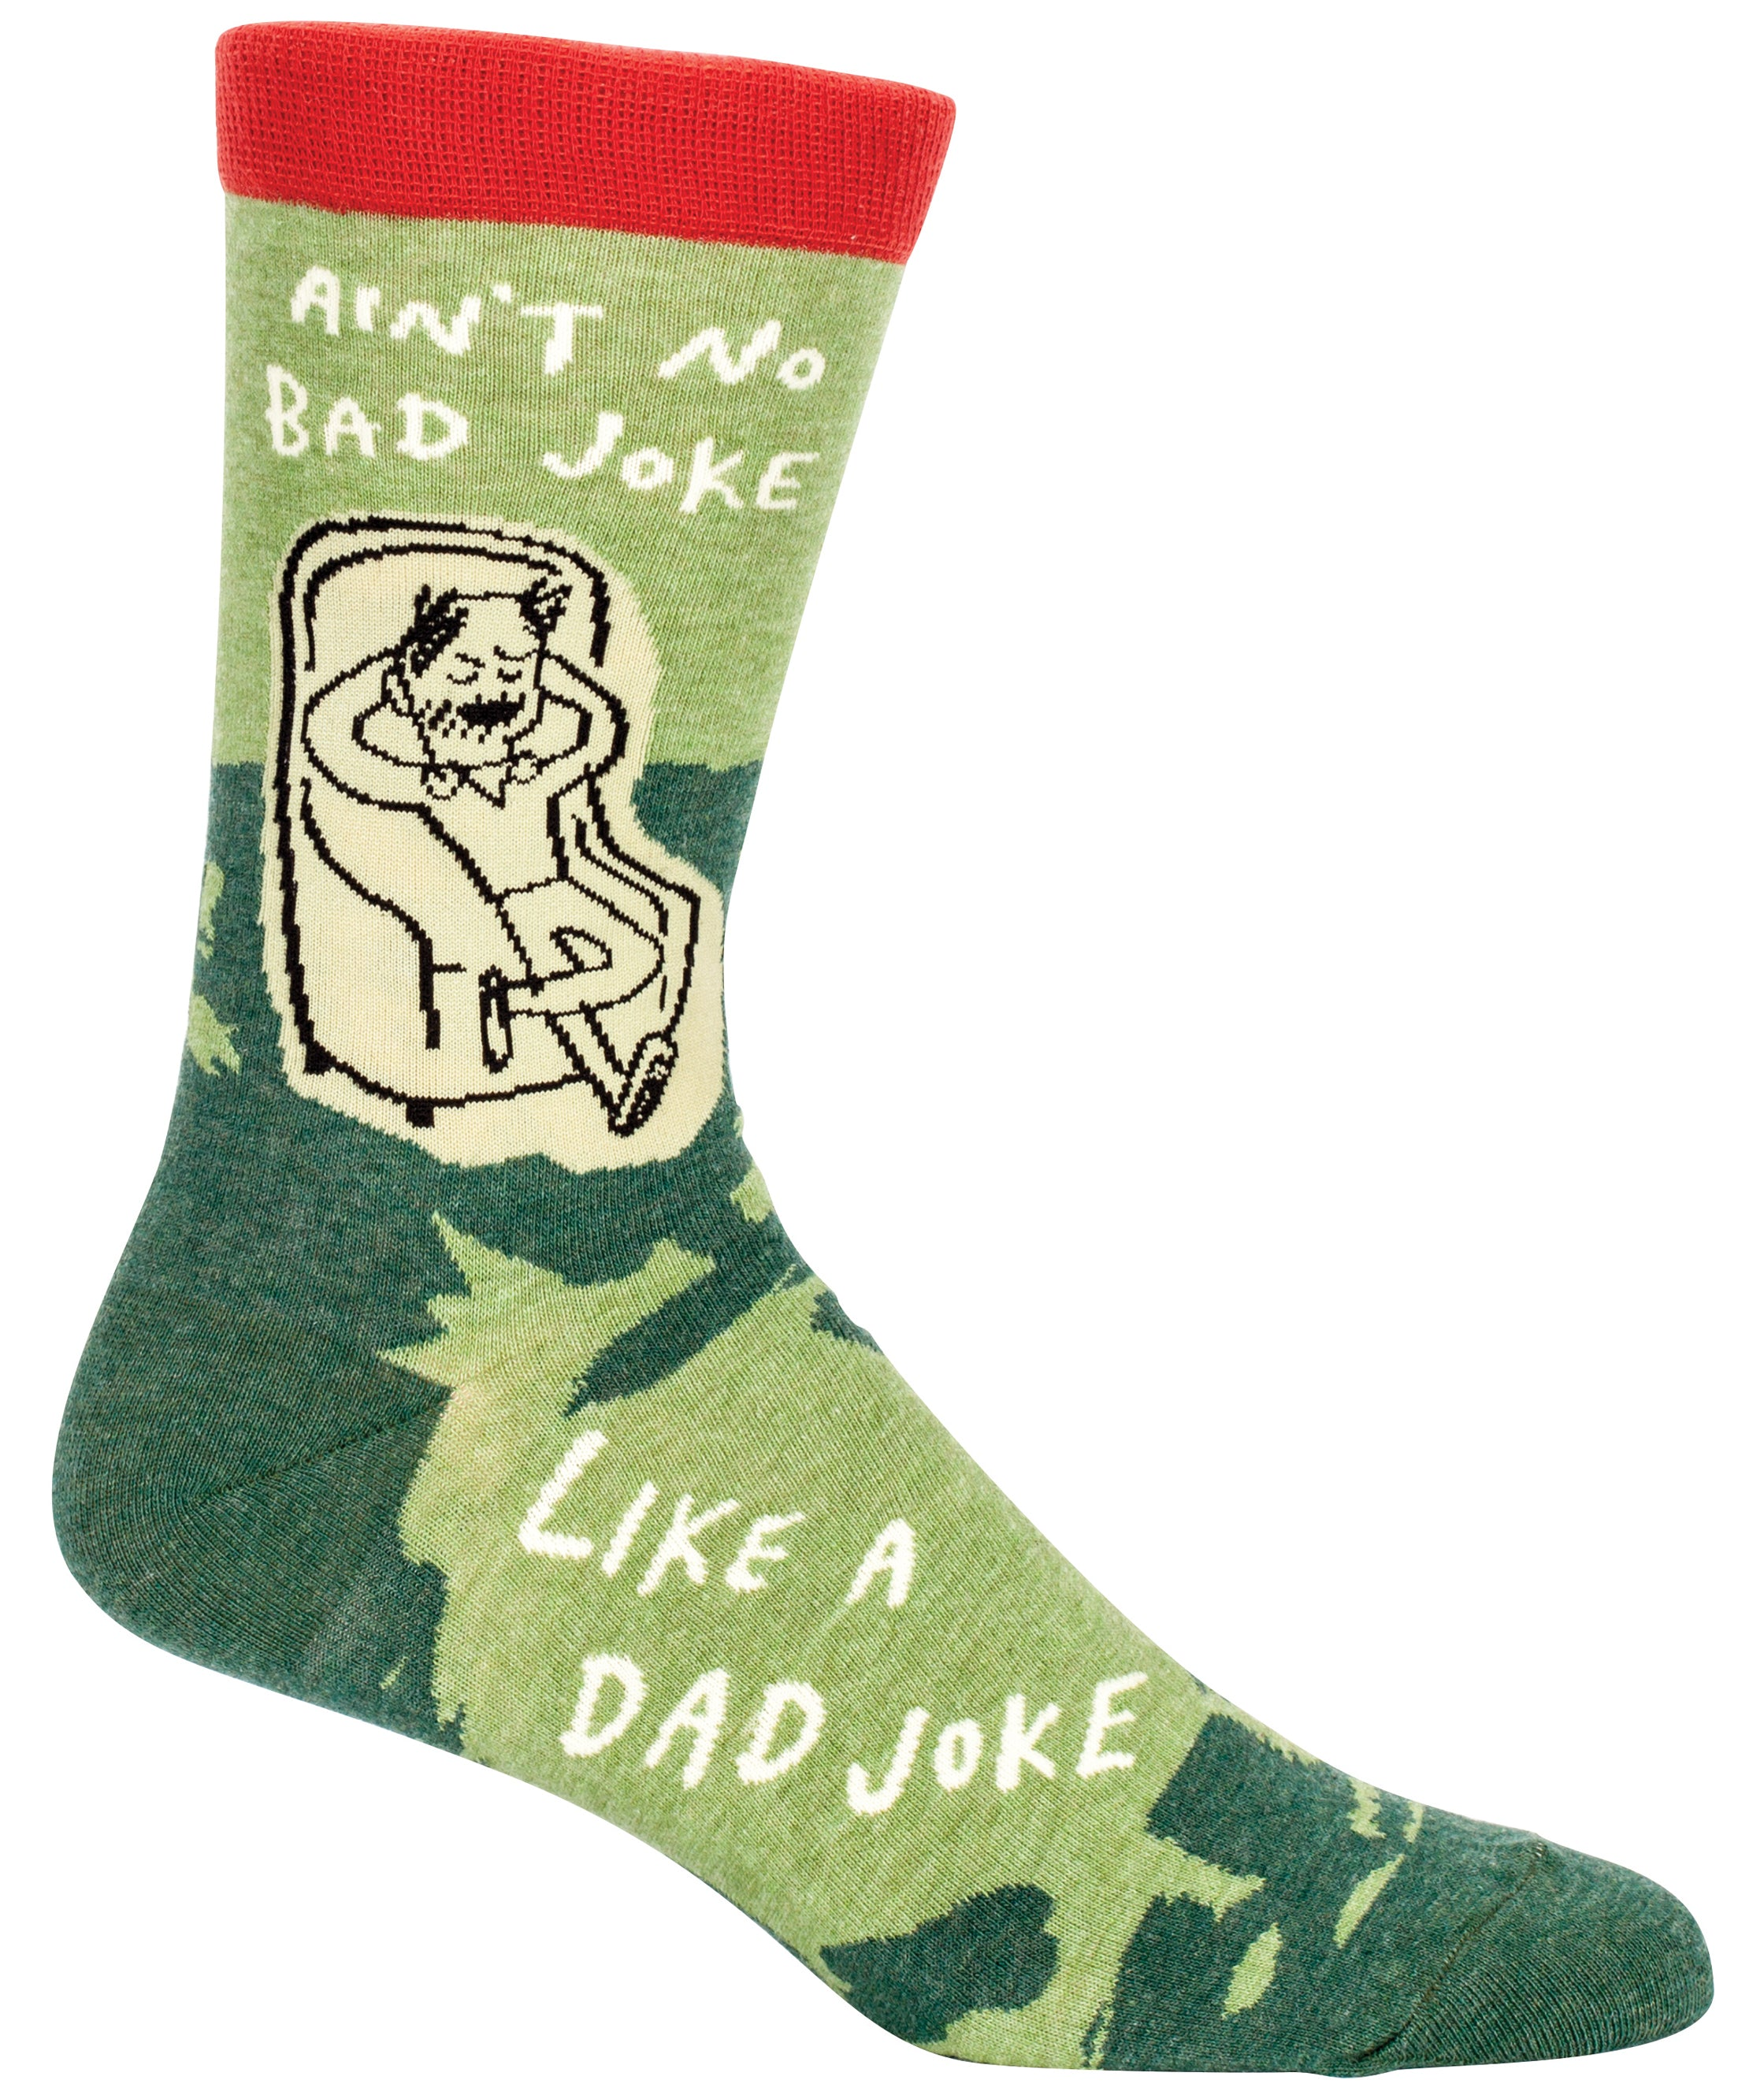 blue q mens socks dad joke